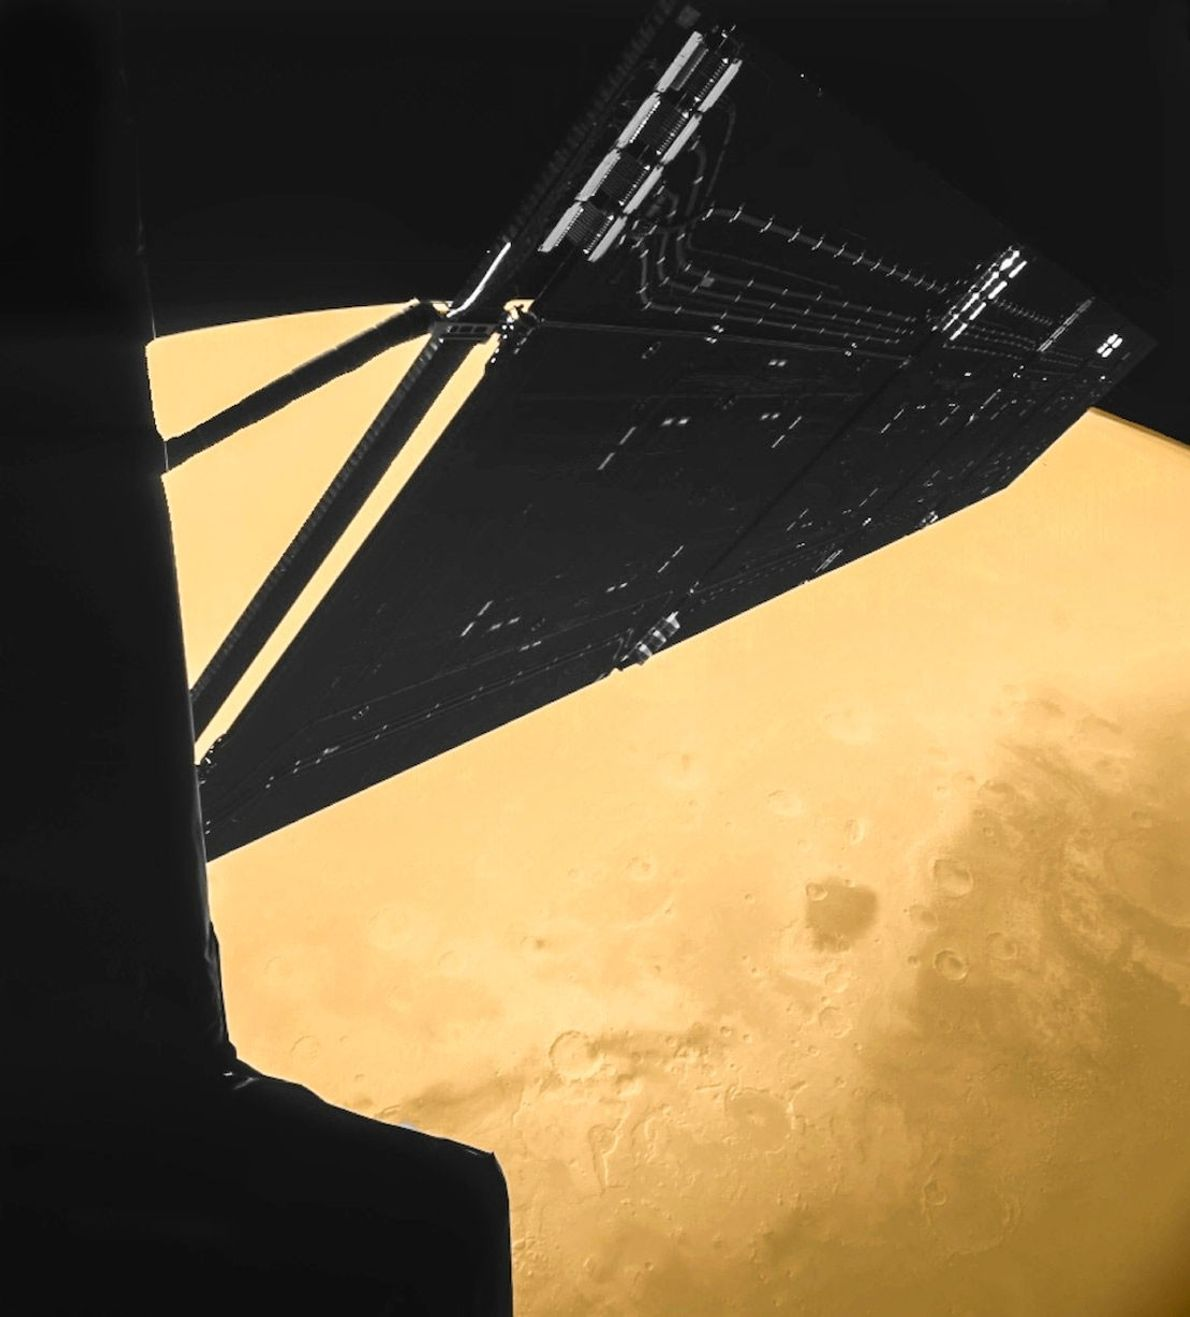 In 2007, the Rosetta spacecraft passed just 155 miles from the surface of Mars on its ...